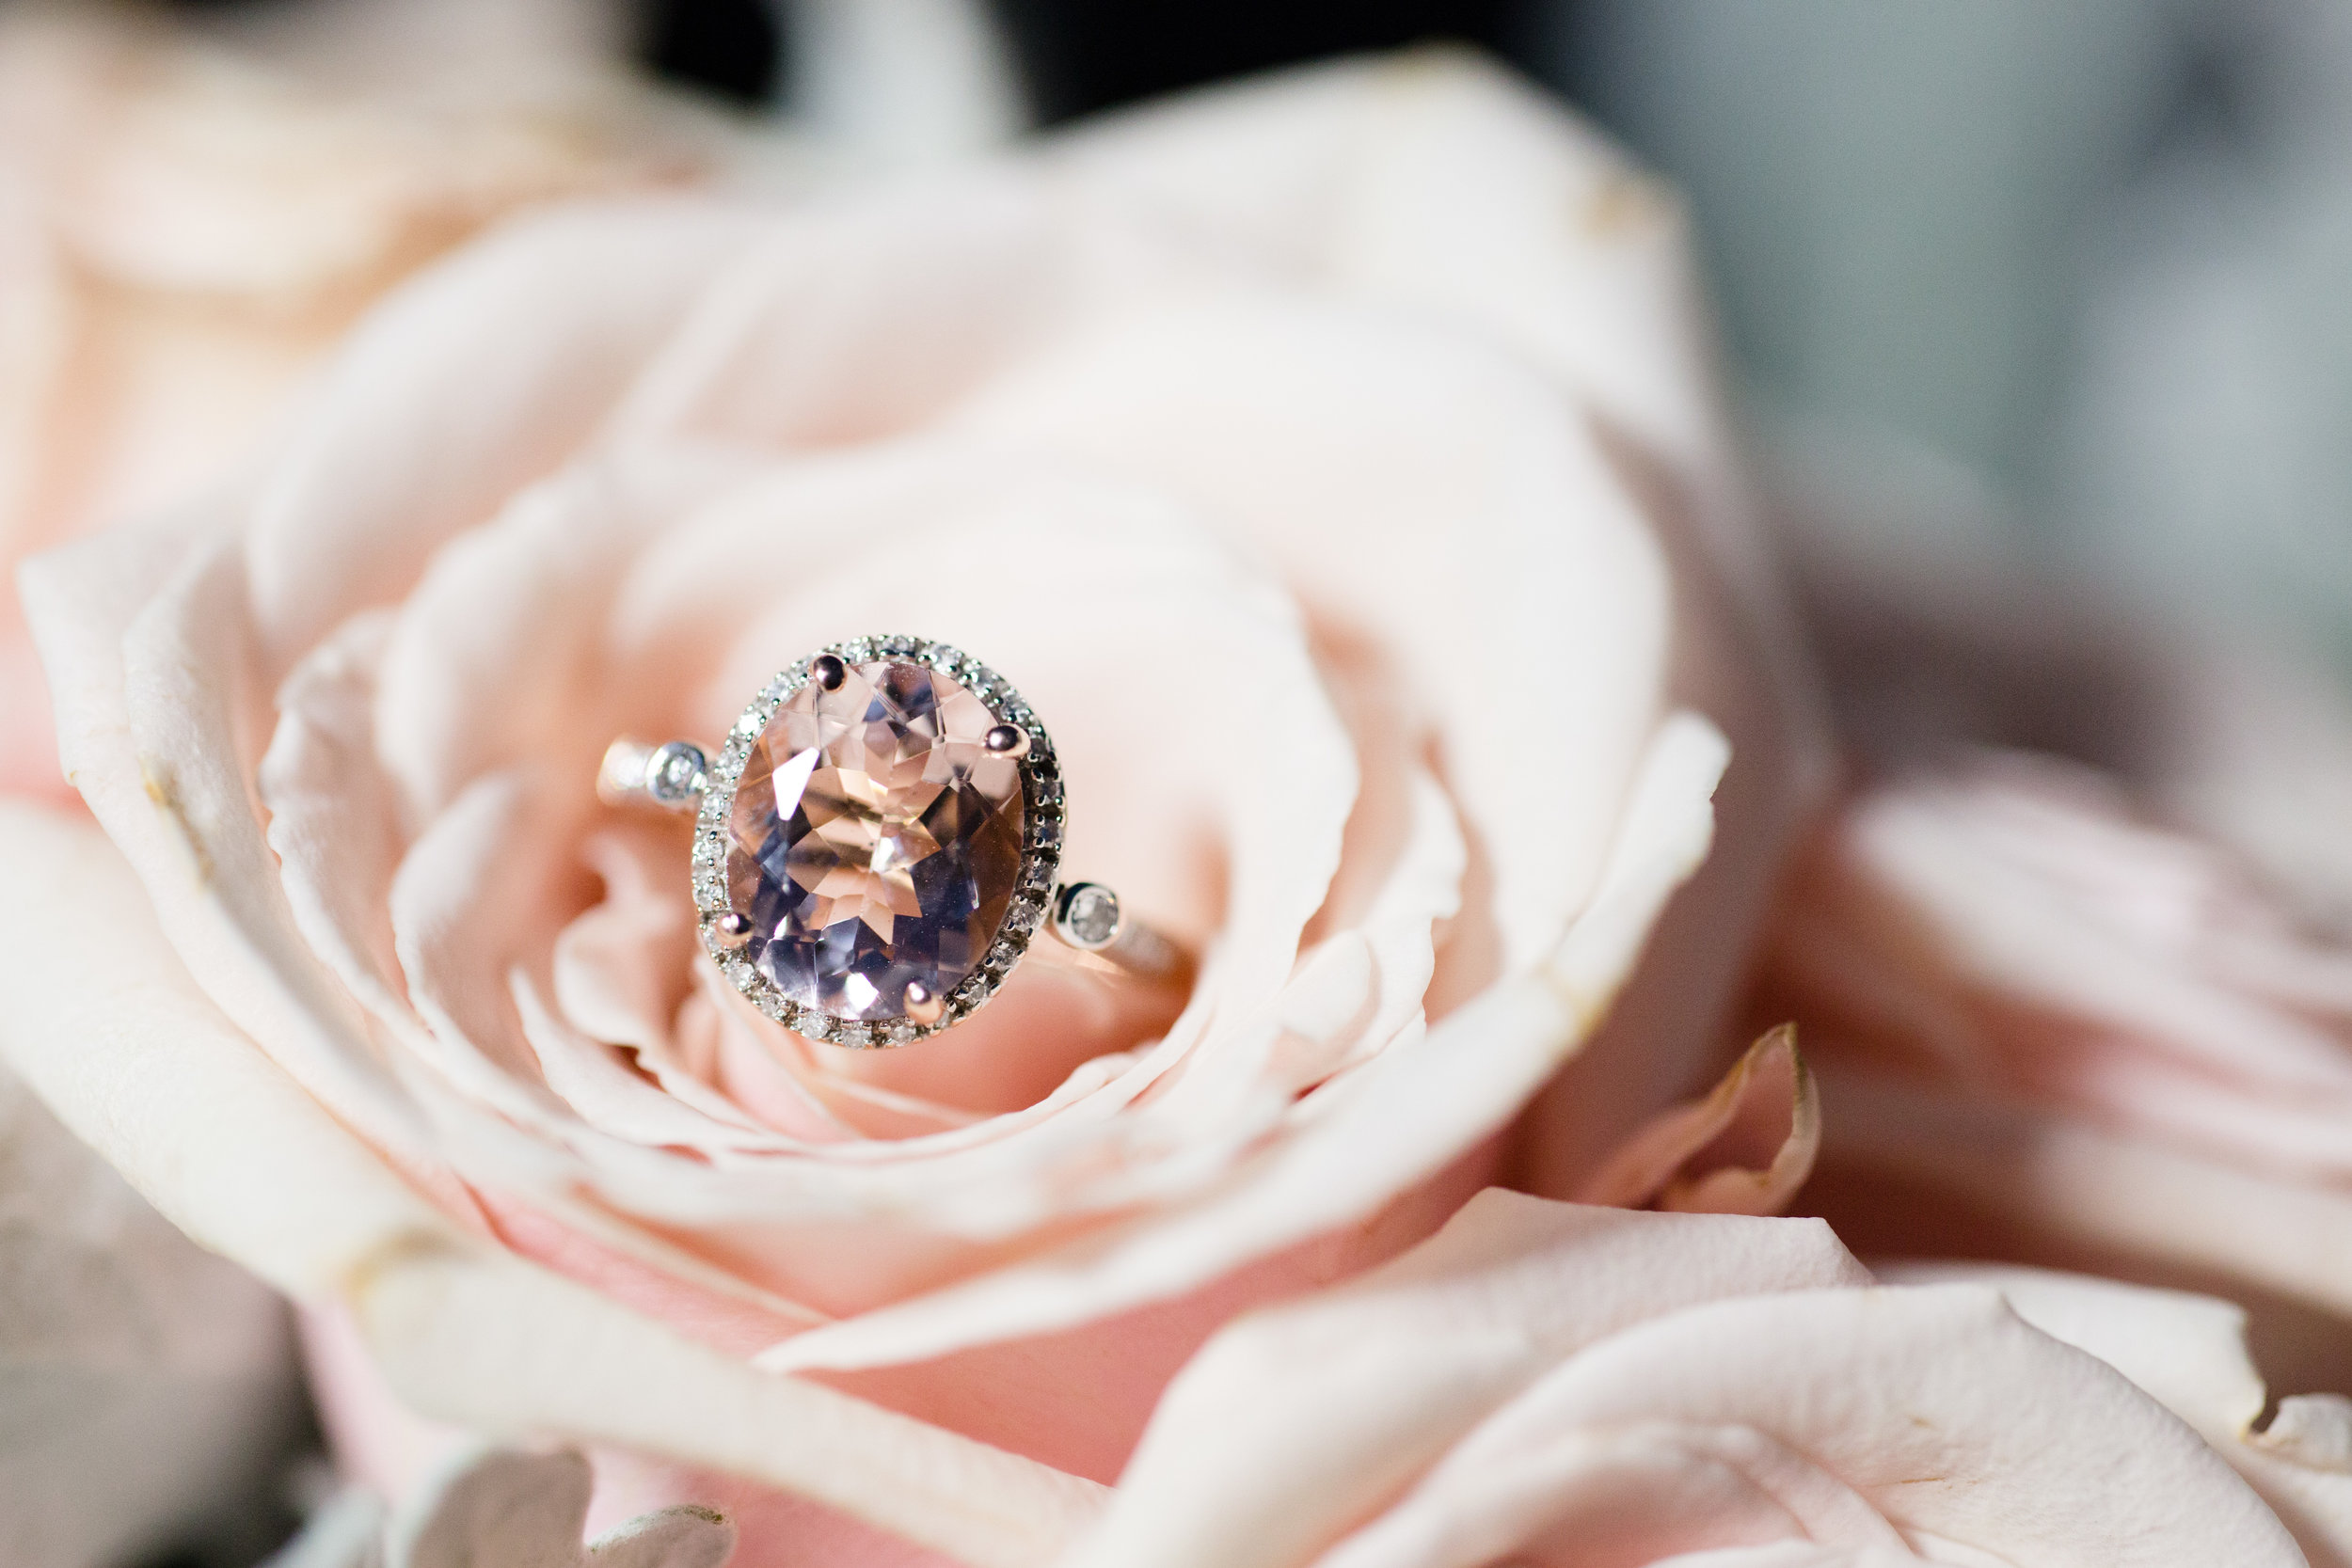 blush pink oval engagement ring with halo atop blush pink rose at beach engagement photo session